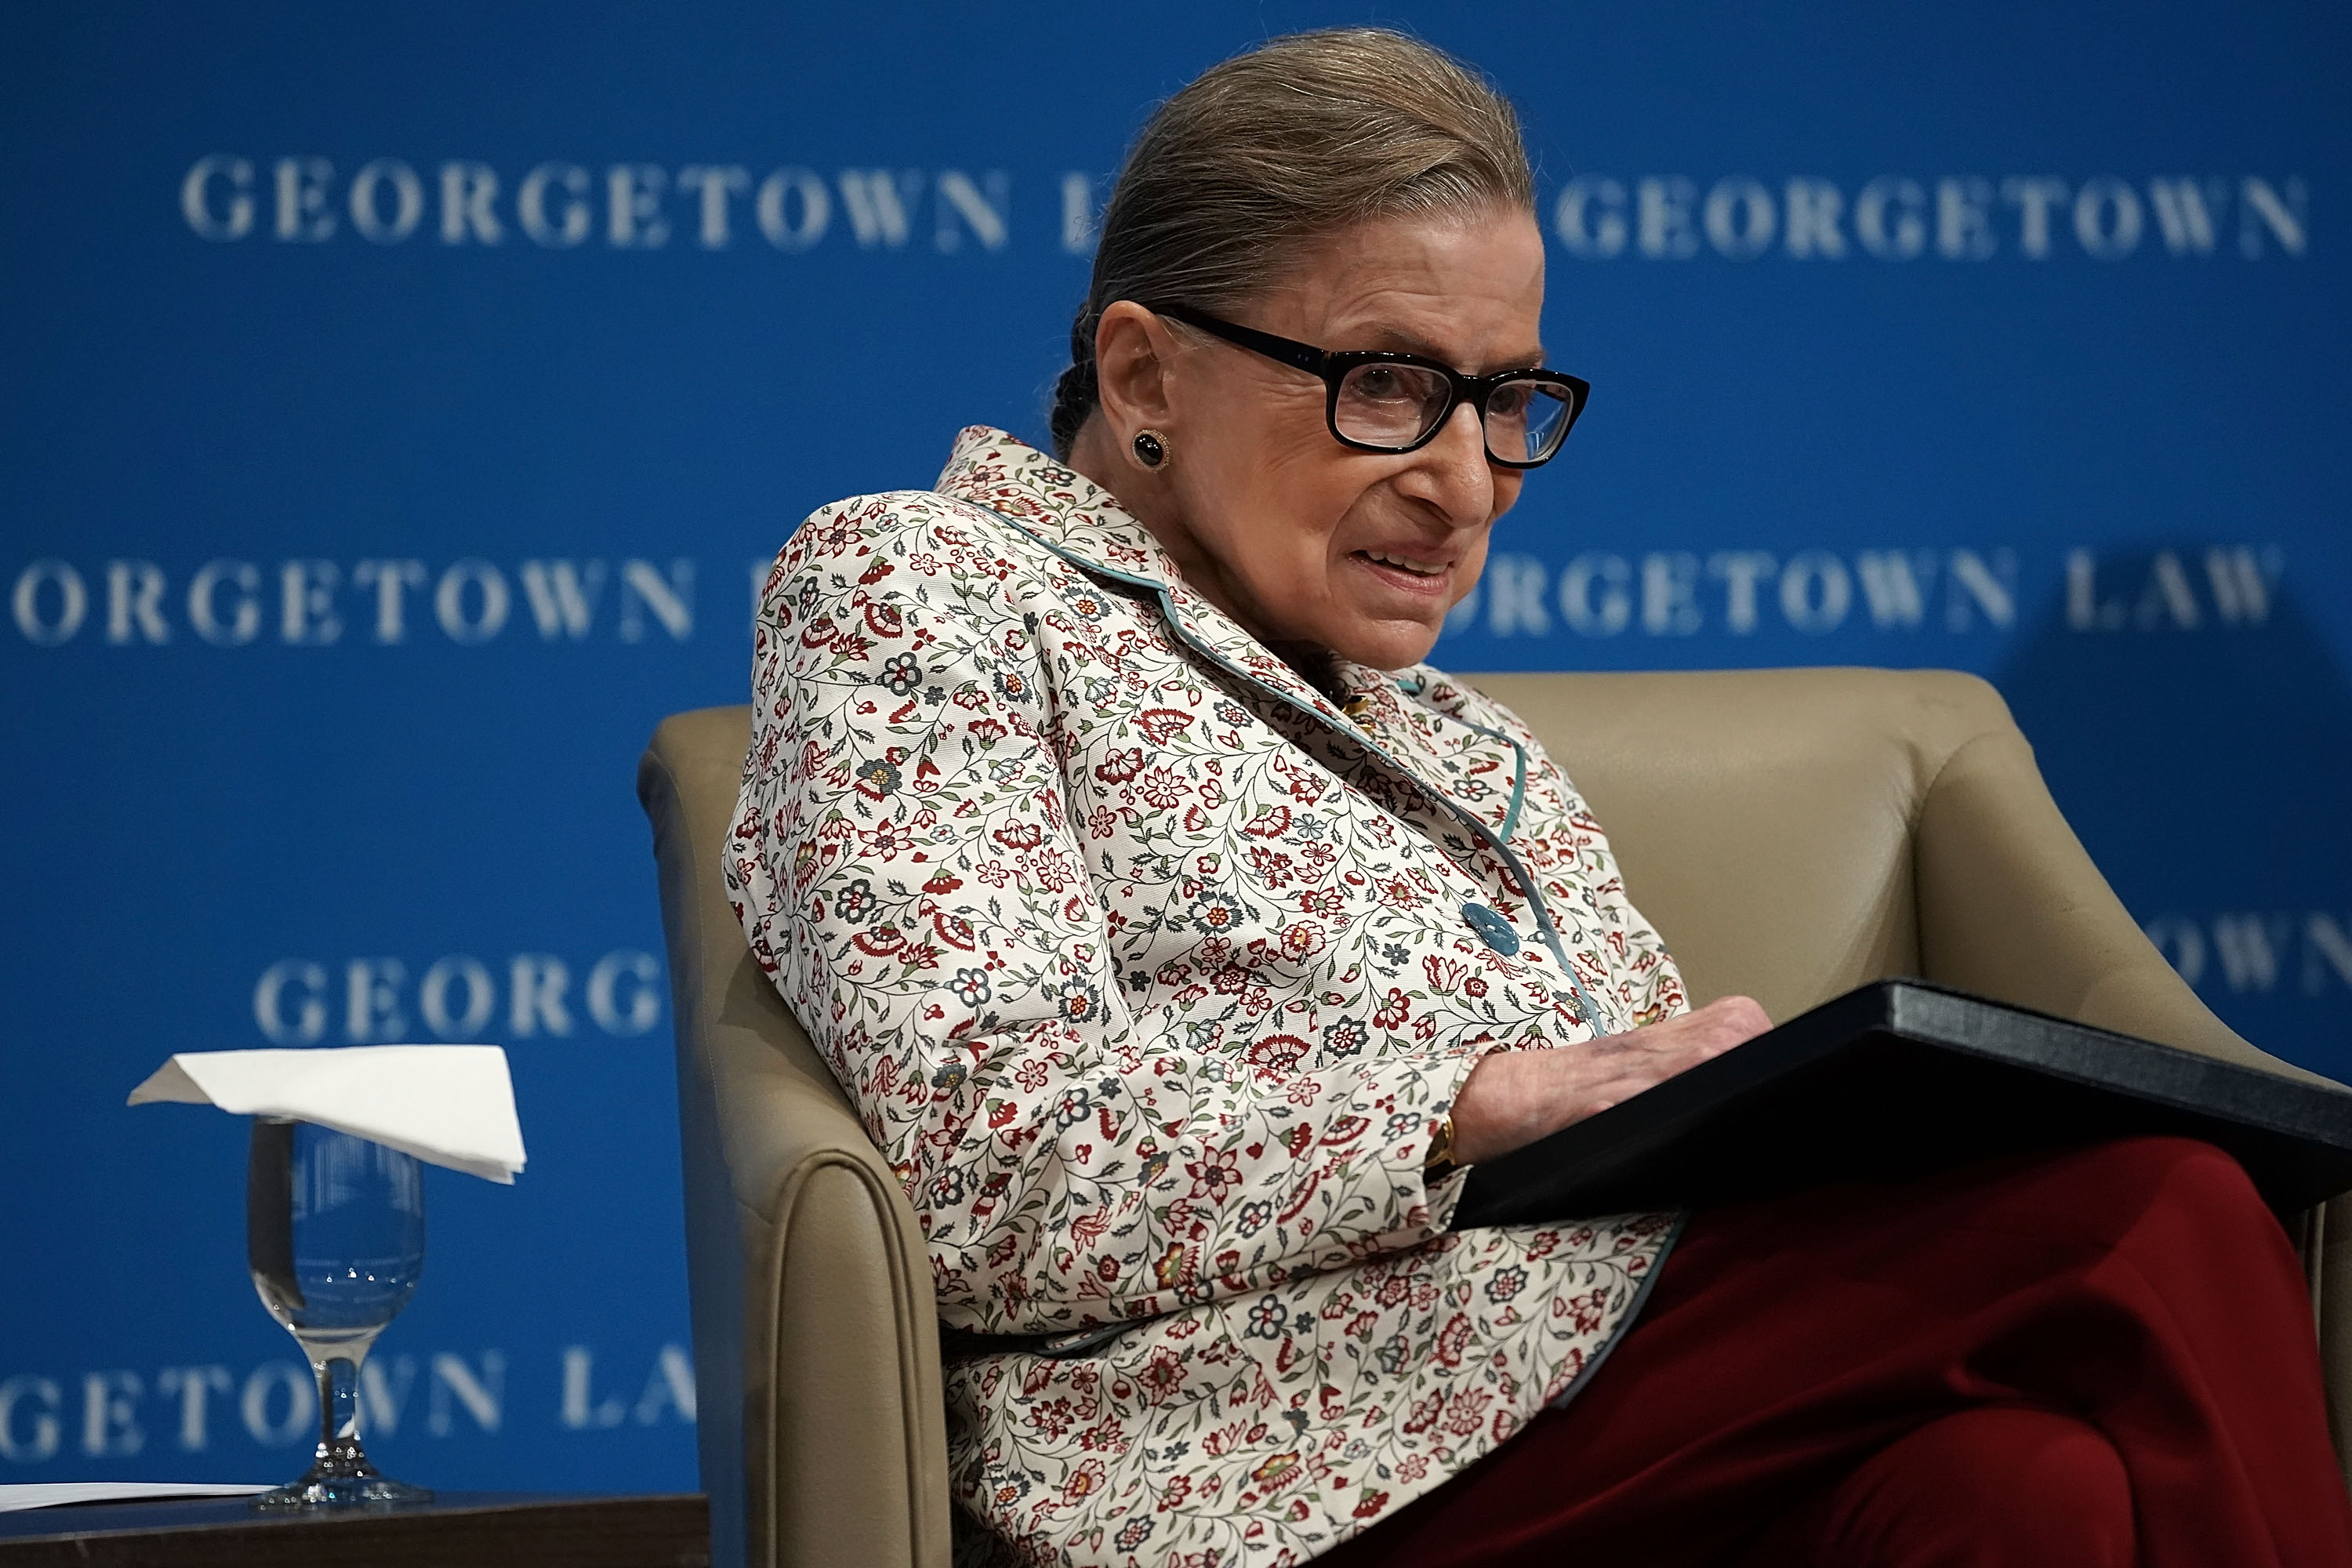 U.S. Supreme Court Justice Ruth Bader Ginsburg participates in a lecture September 26, 2018 at Georgetown University Law Center in Washington, DC. Justice Ginsburg discussed Supreme Court cases from the 2017-2018 term at the lecture. (Getty Images)